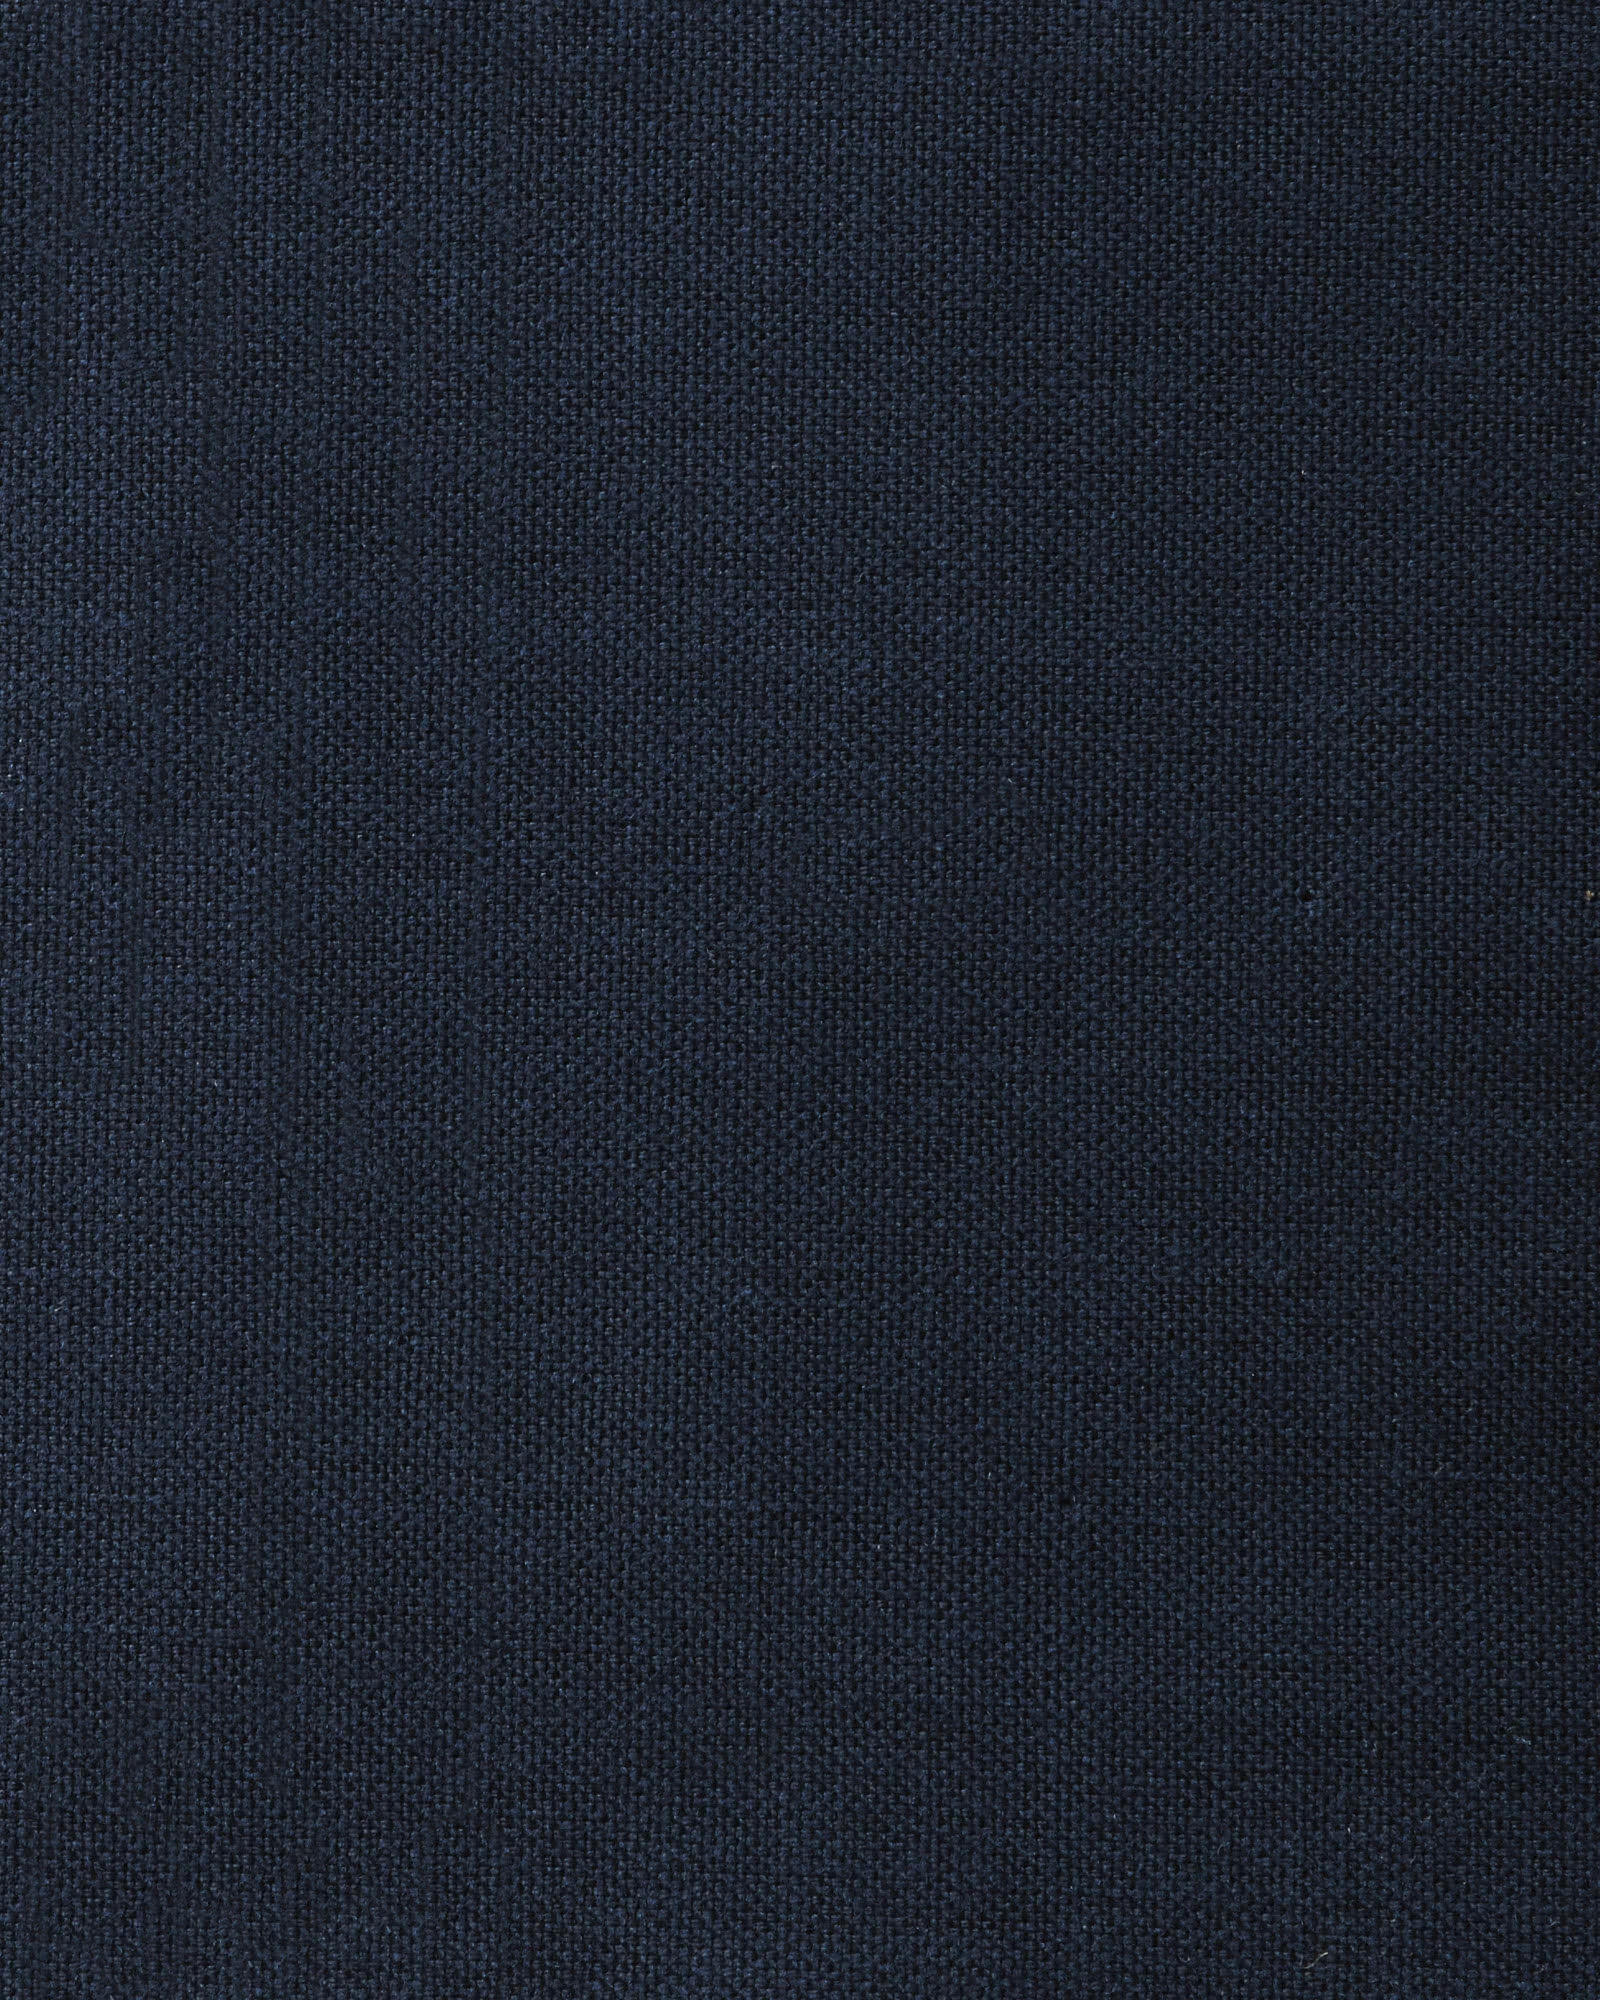 Brushed Cotton Canvas - Navy,